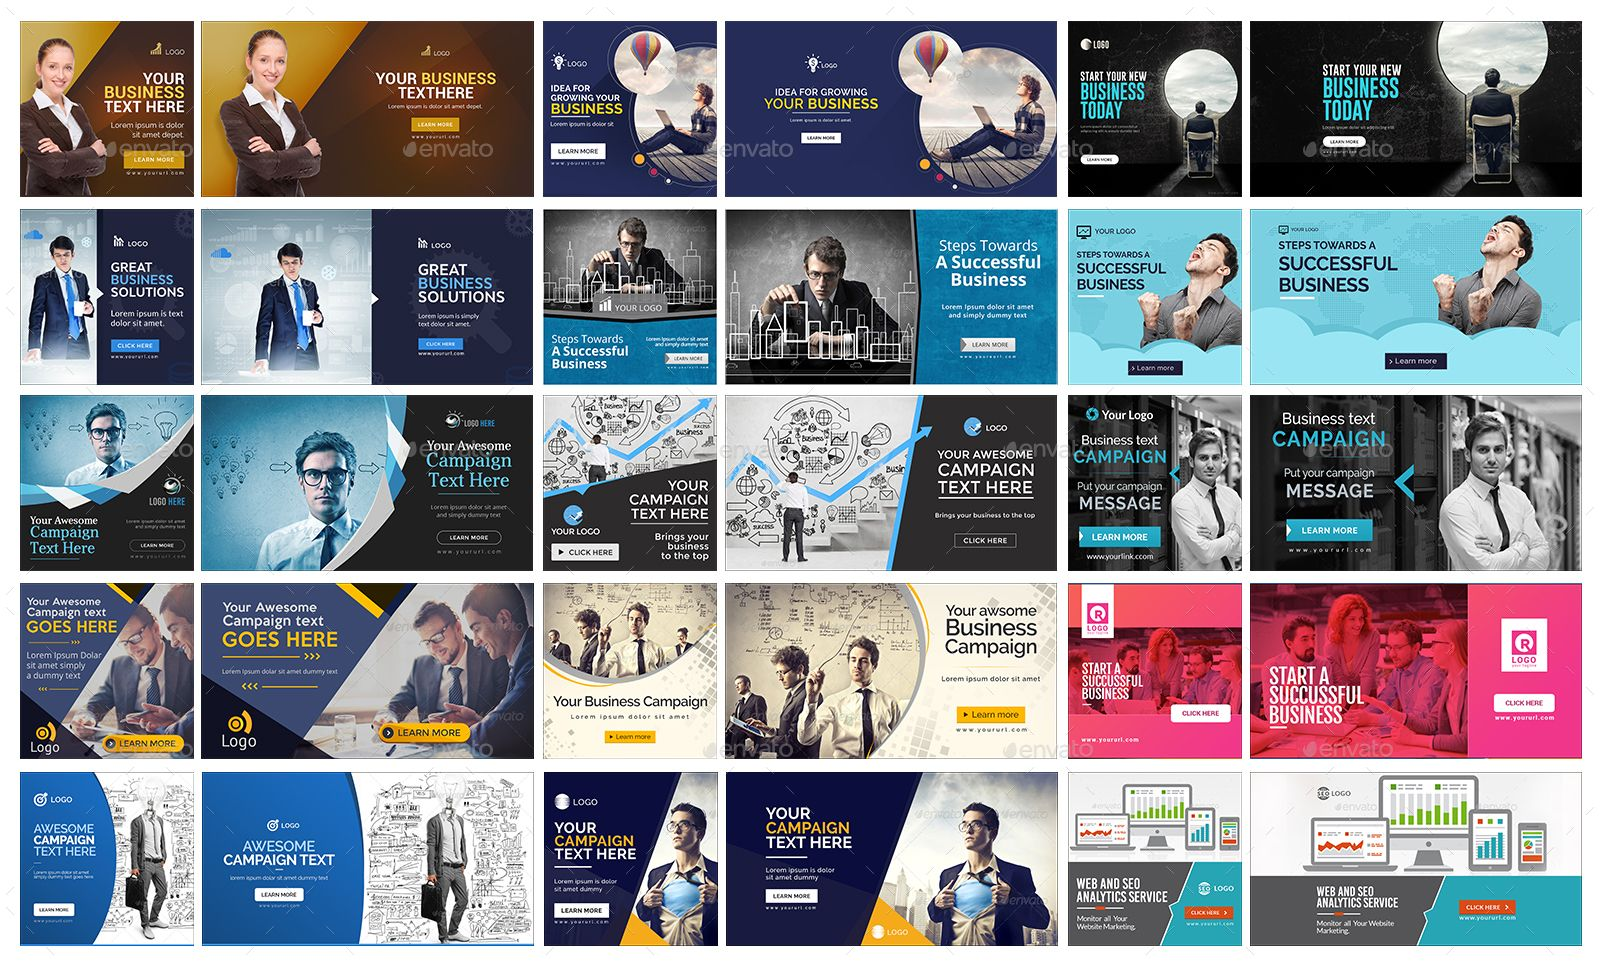 Facebook Ad Banners - 50 Designs - 2 Sizes Each #AD #